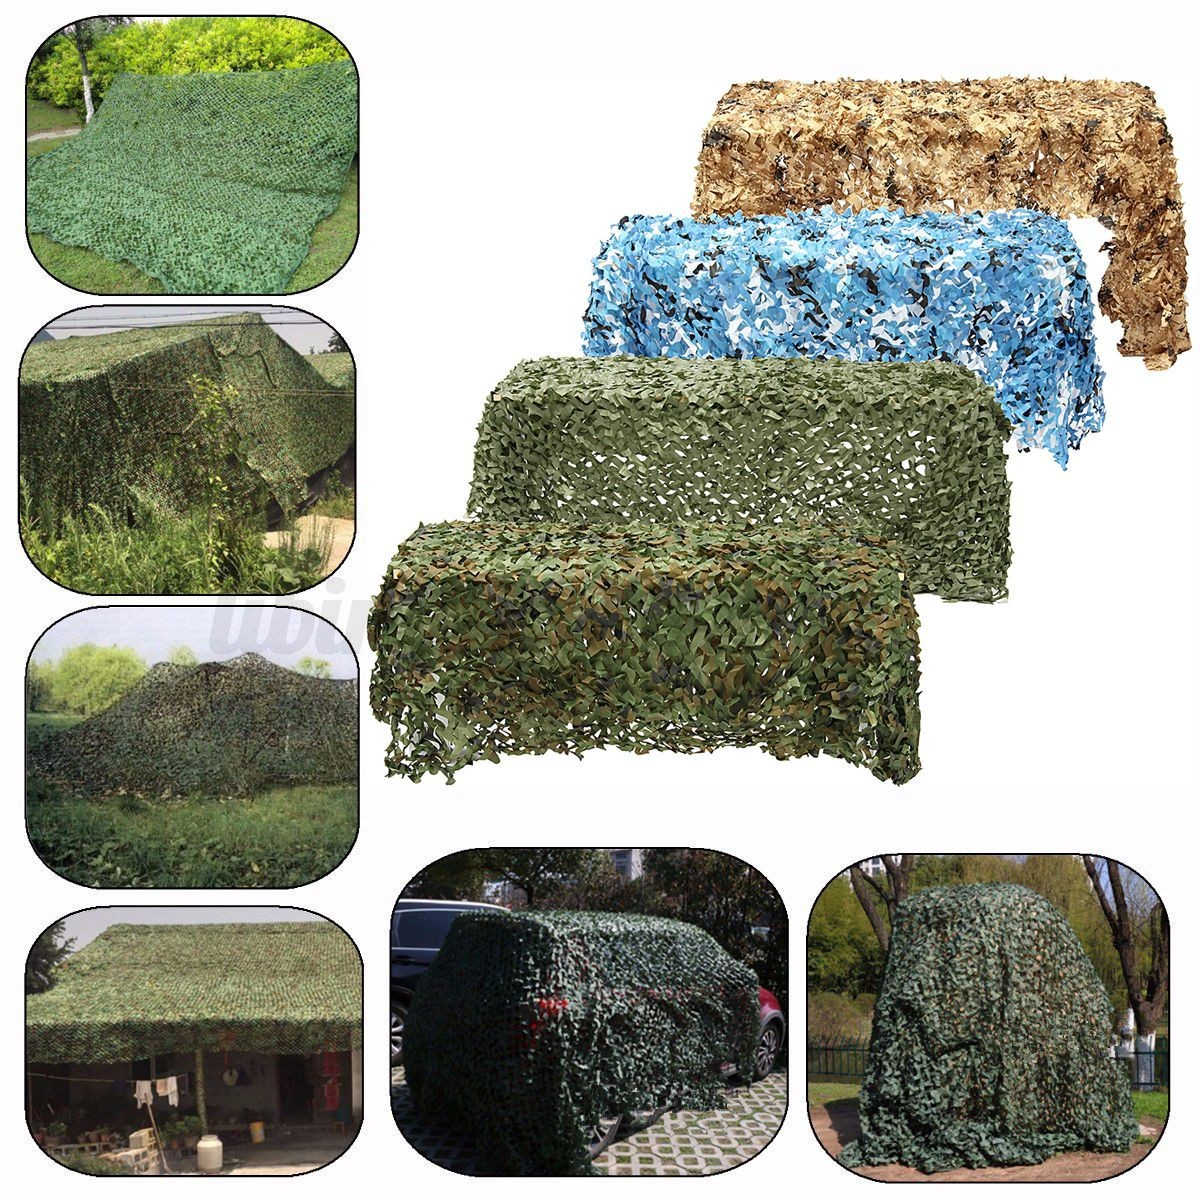 tarnnetz 4 x 2m camouflage net sichtschutz sonnenschutz f r outdoor garten party ebay. Black Bedroom Furniture Sets. Home Design Ideas